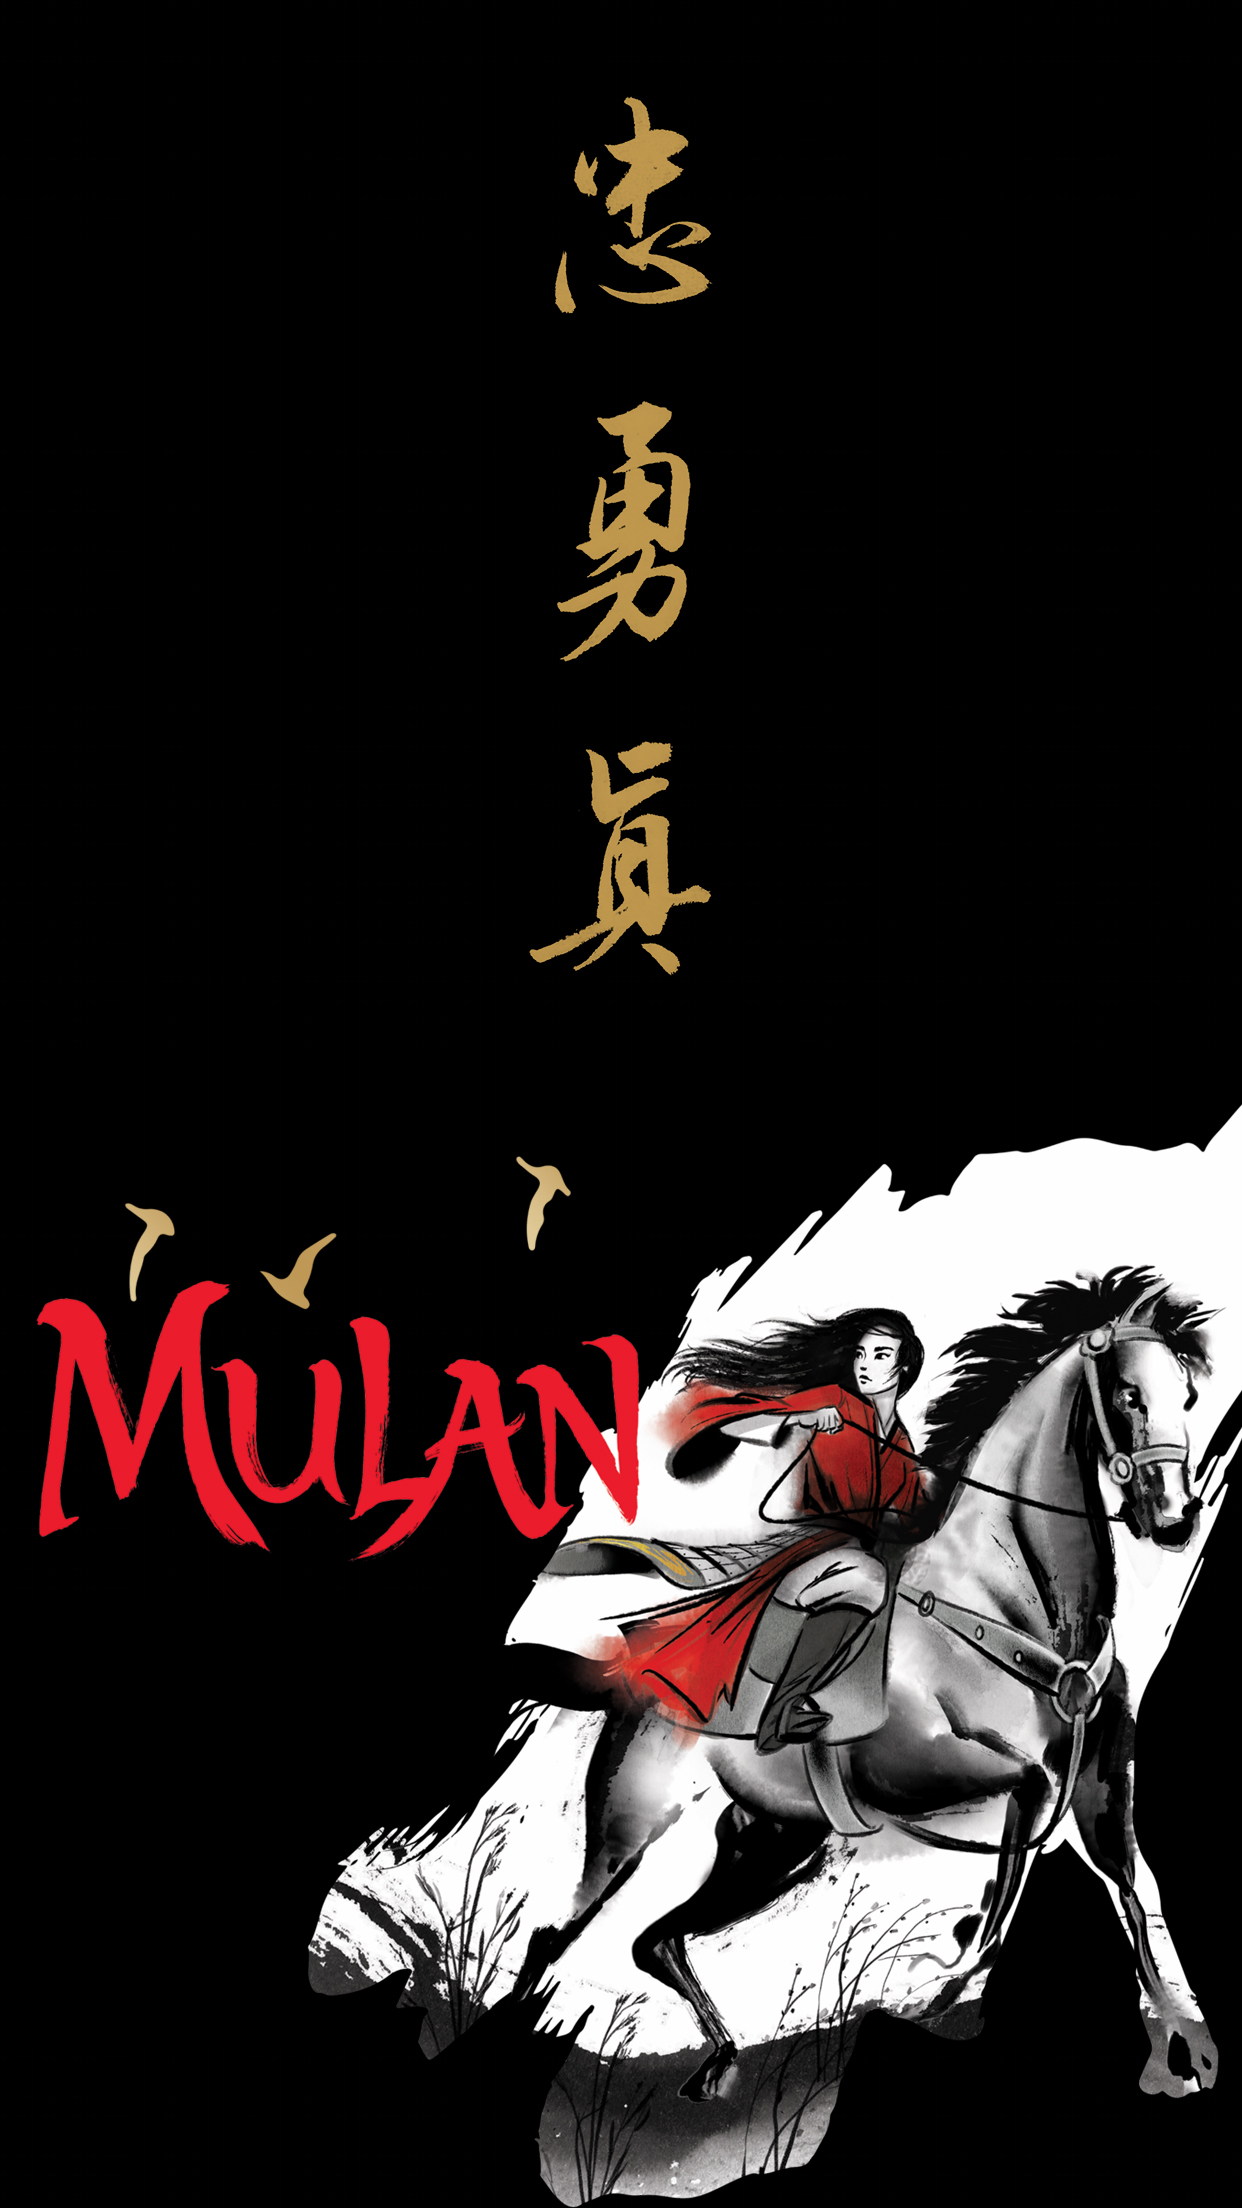 Mulan Movie Live Action 2020 New Wallpapers In Watercolor Style Youloveit Com